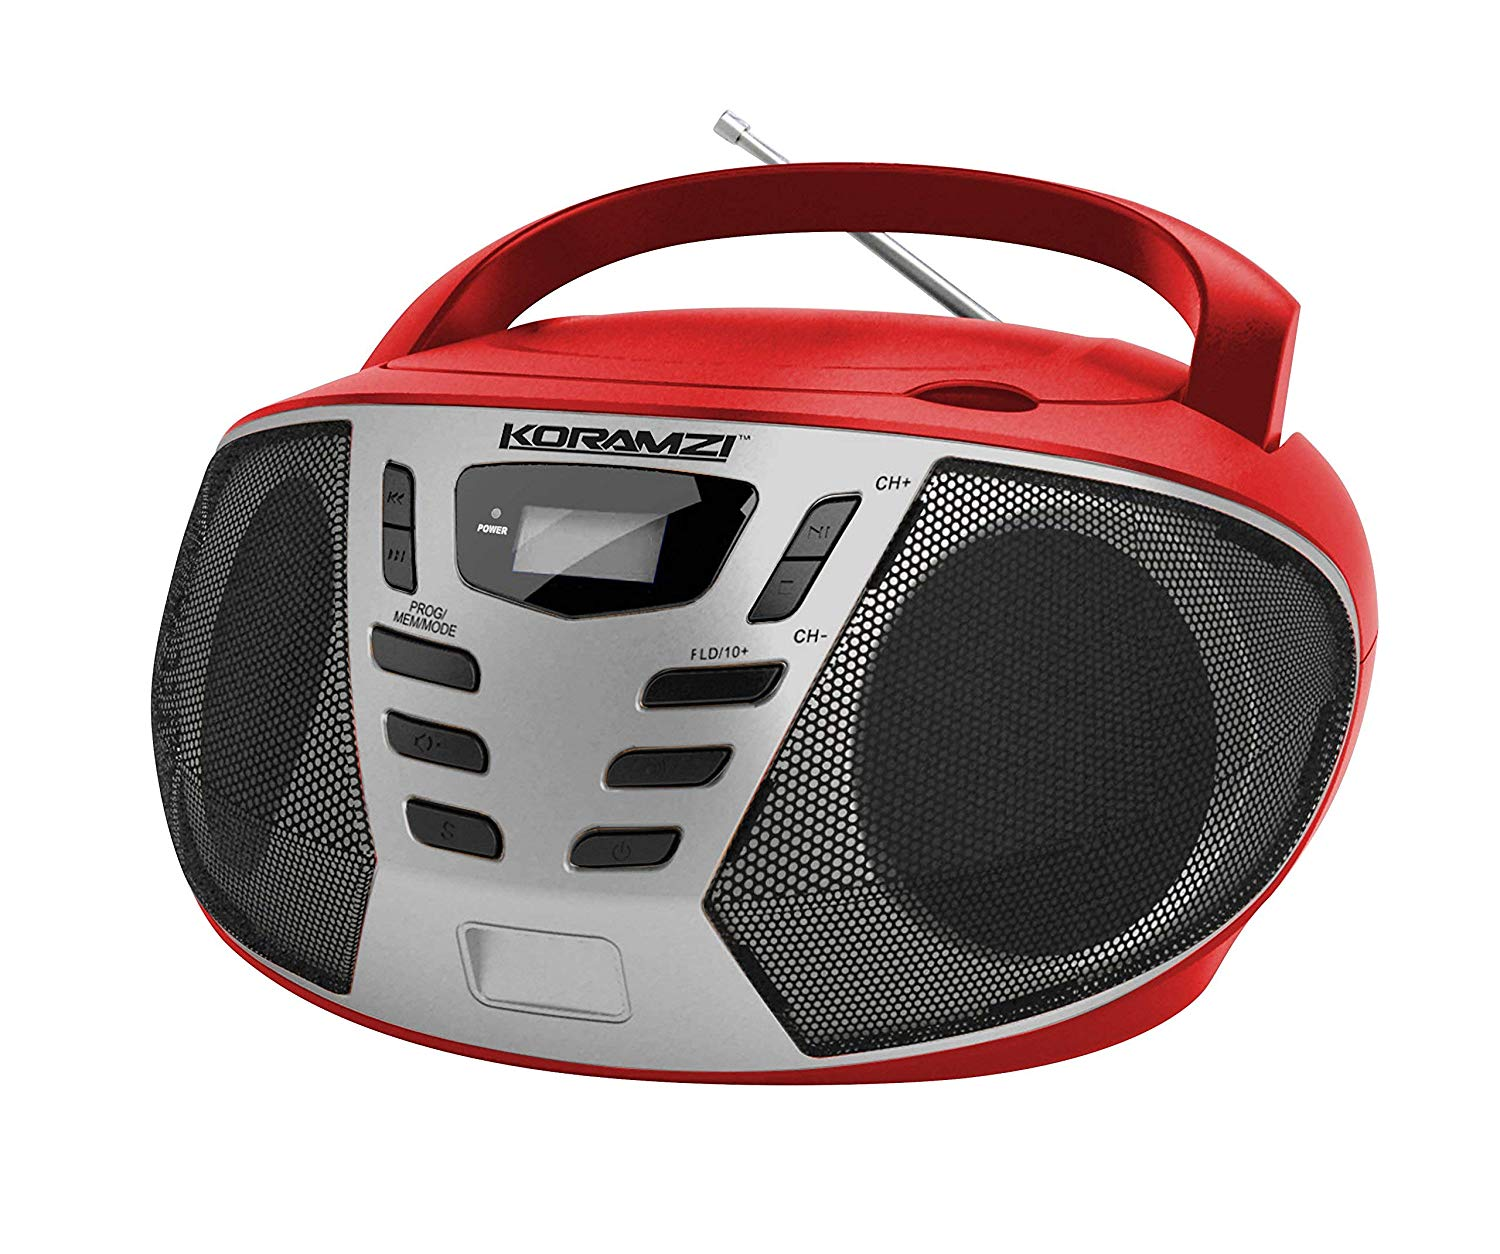 KORAMZI Portable CD Boombox w/ AM/FM Radio,AUX IN, Top Loading CD Player,Telescopic Antenna, LCD Display for Indoor & Outdoor (Red/Silver) CD55-RDS(Certified Refurbished)